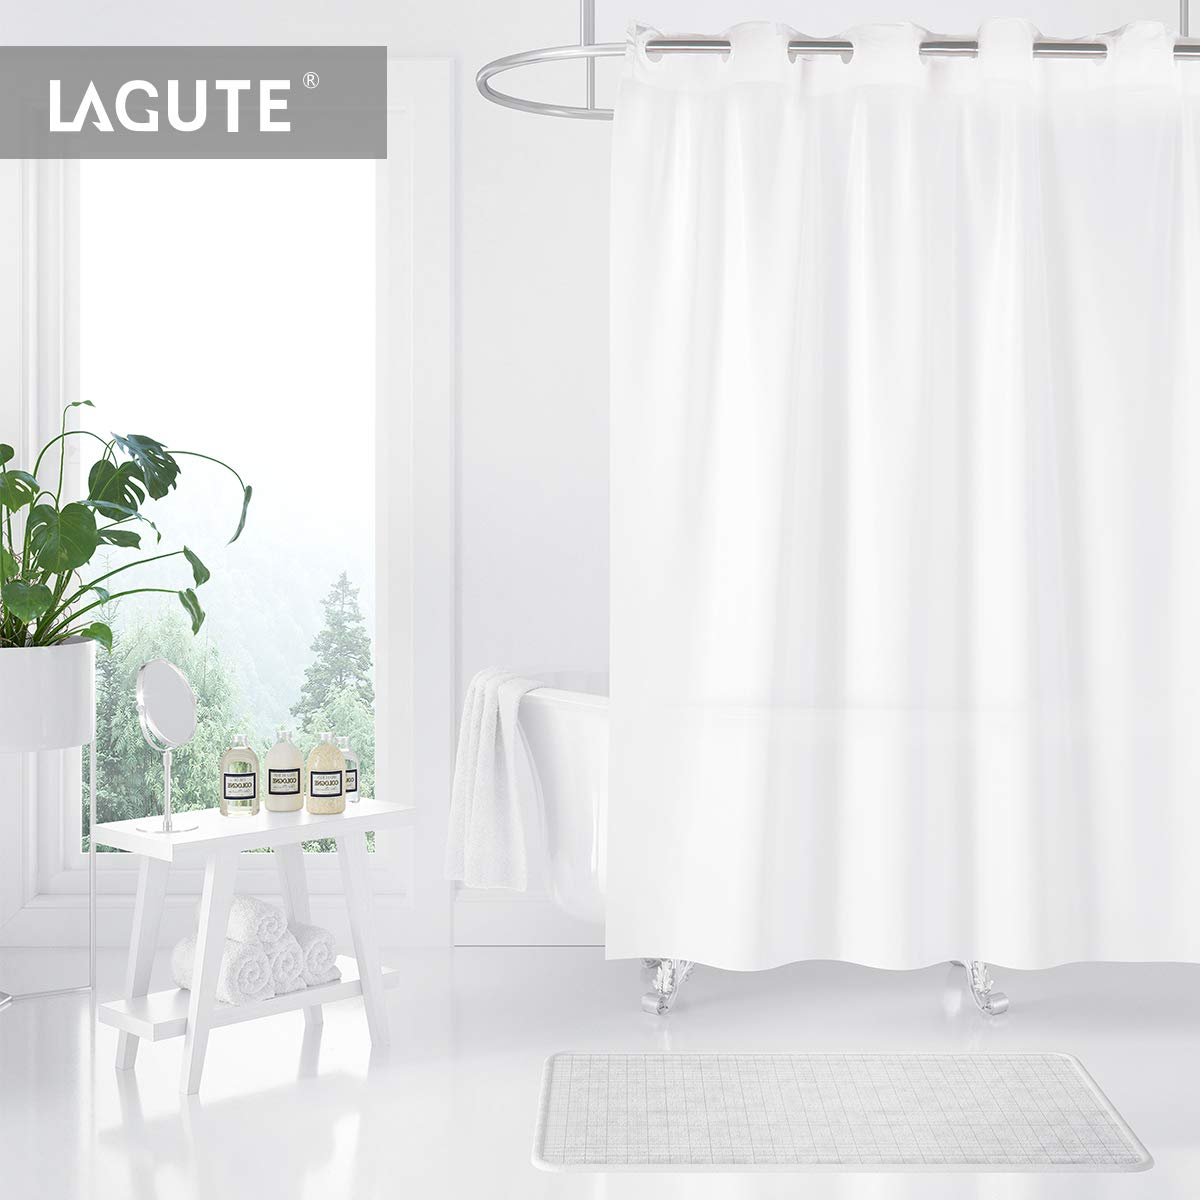 Lagute SnapHook Shower Curtain, 71 x 74 inch Translucent Lightweight PEVA Bathroom Curtain with Waterproof Anti-moldy Function Single Layer (Replacement Liner Not Applicable), Frosted White Color